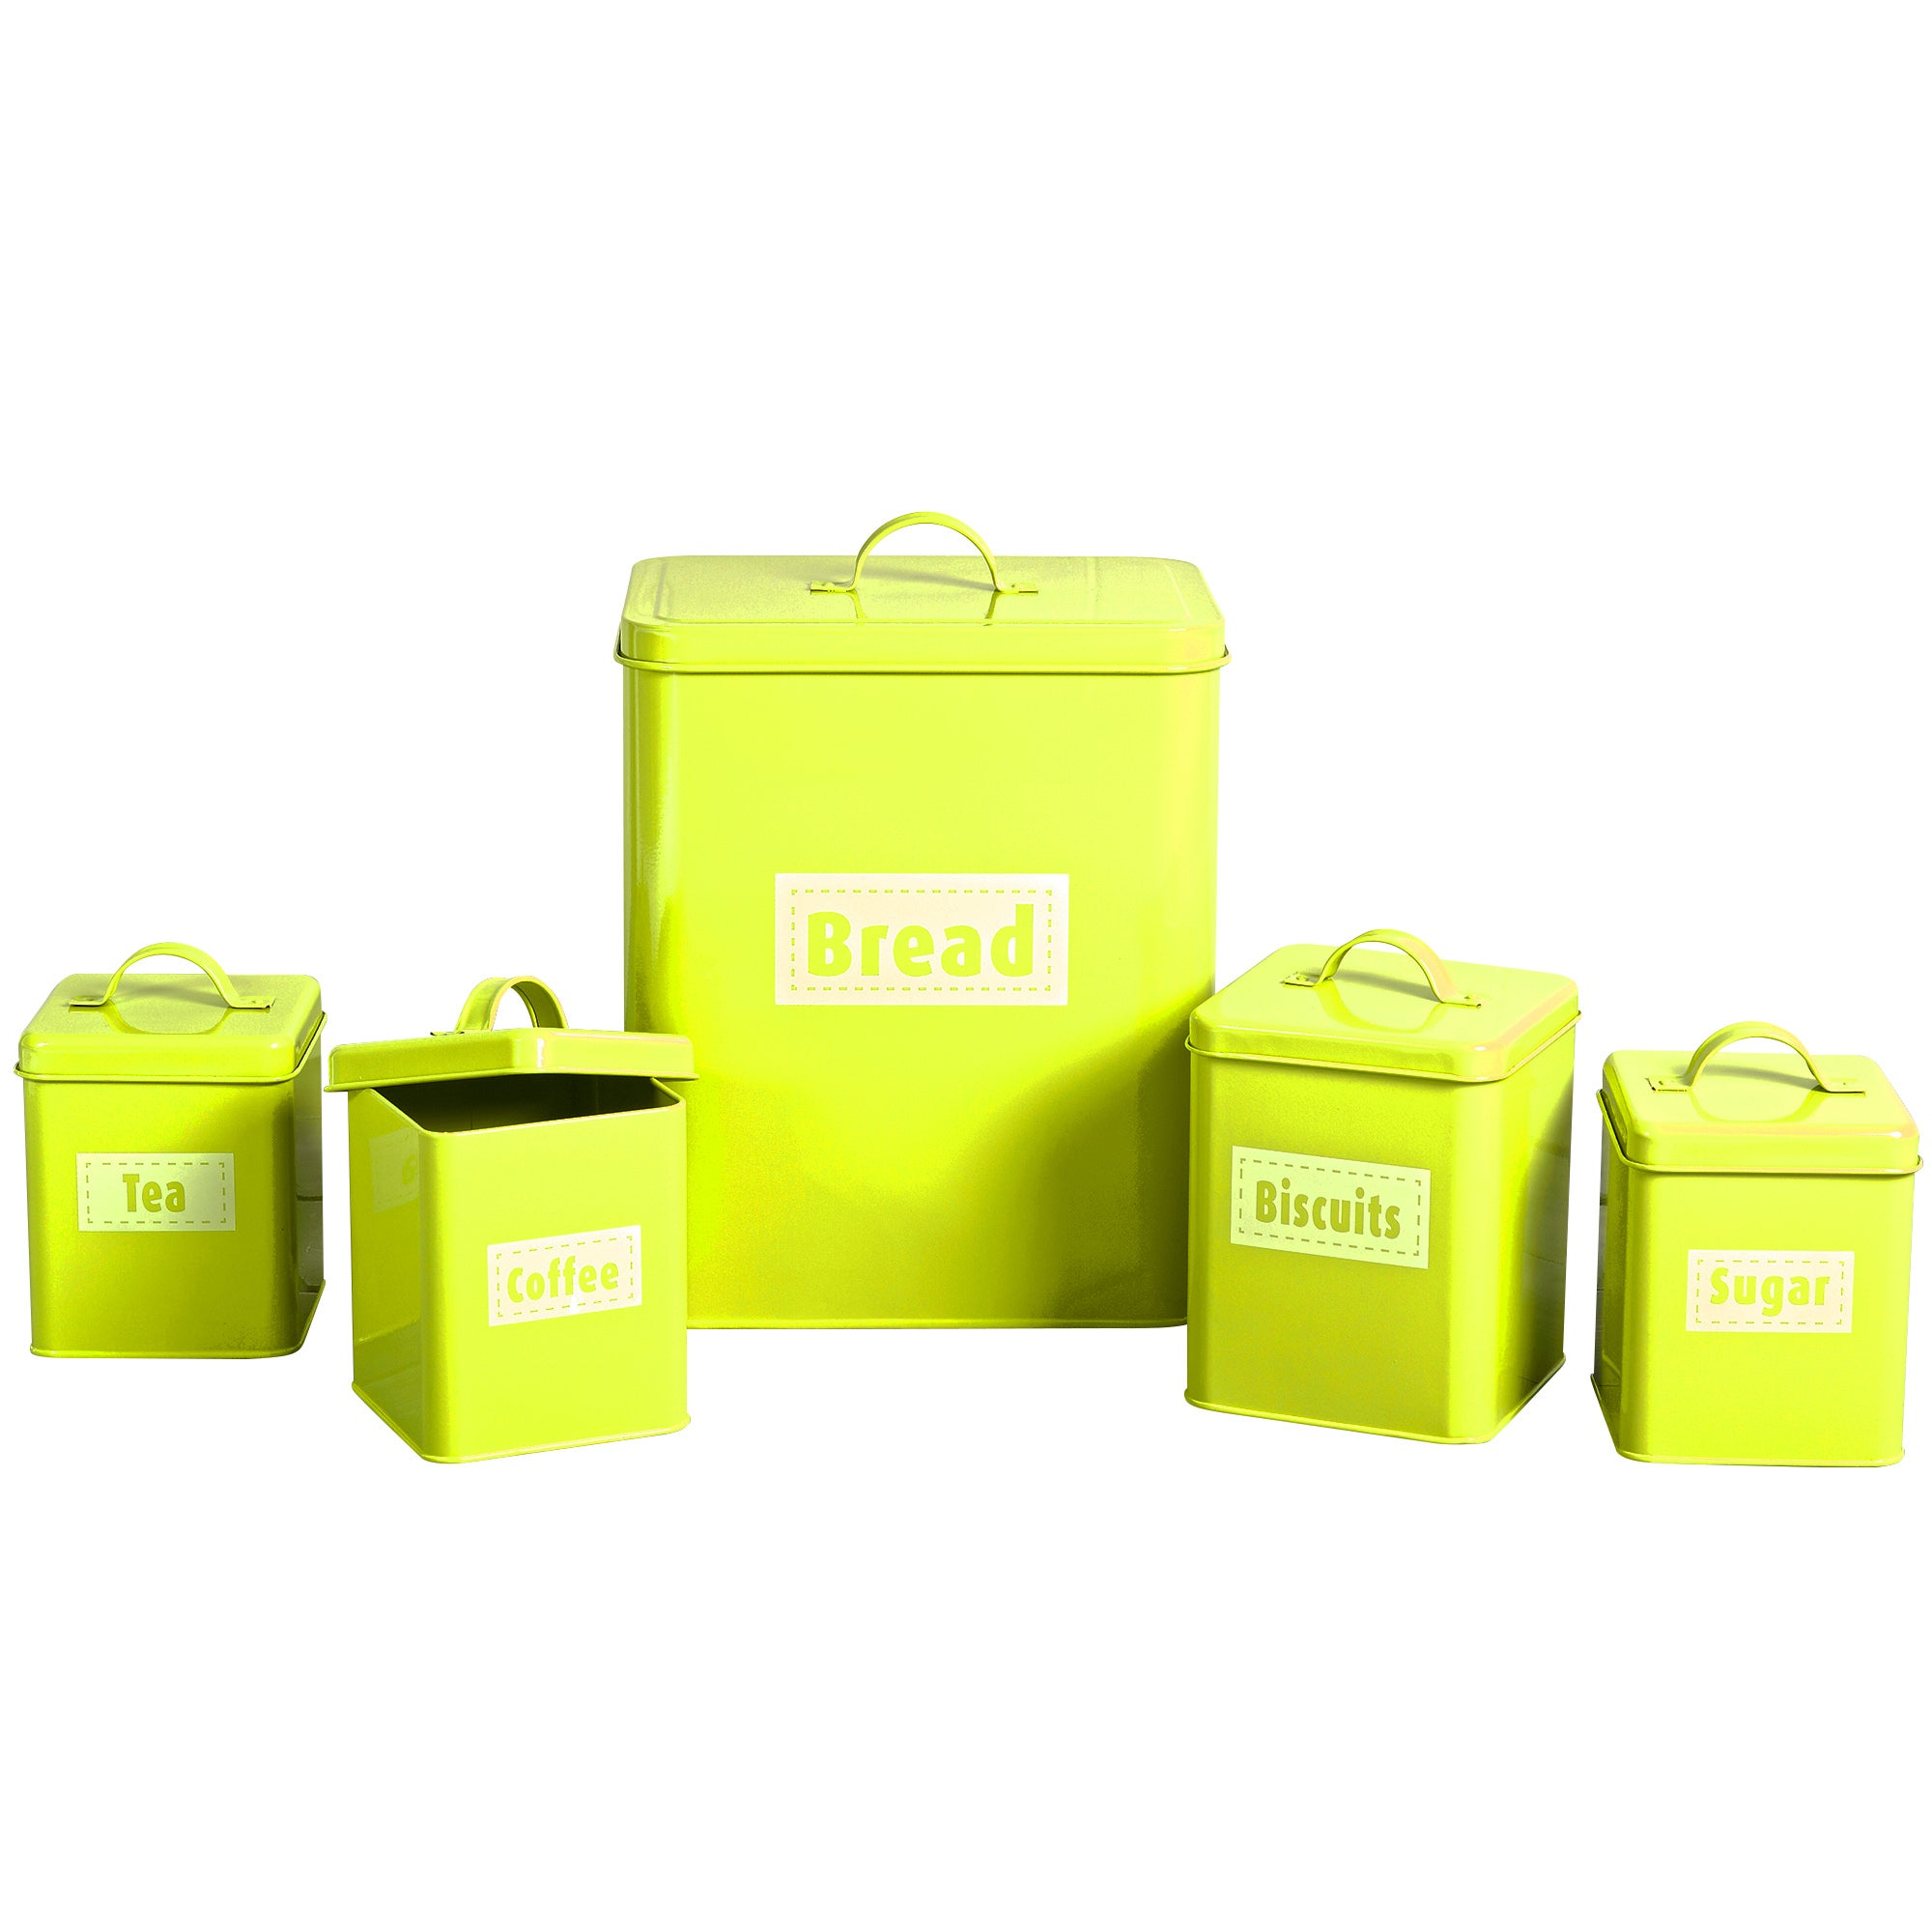 Image of Spectrum 5 Piece Kitchen Storage Set Lime (Green)